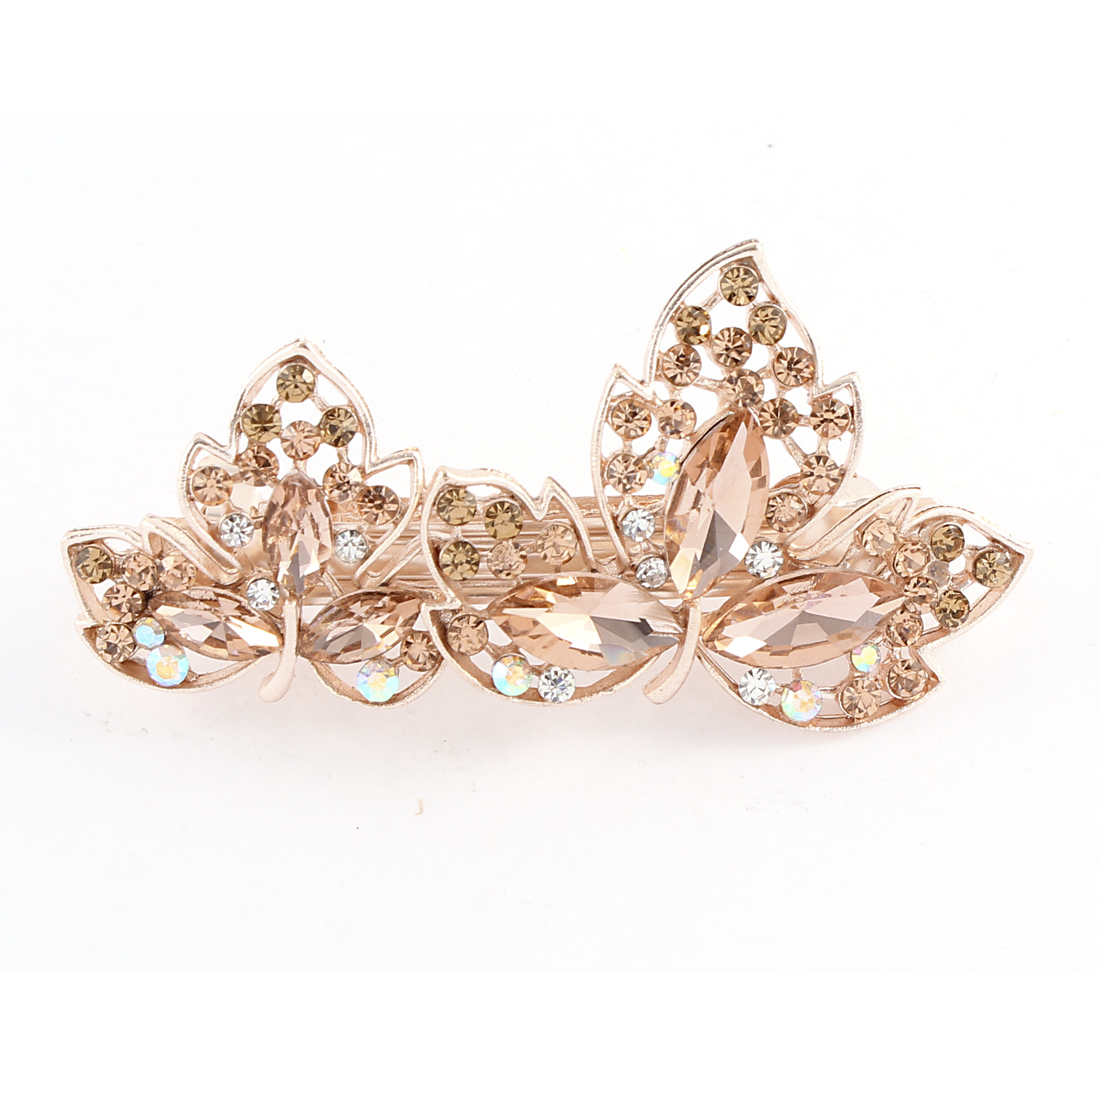 Lady Rhinestone Decor Floral French Hairclip Hair Barrette Pin